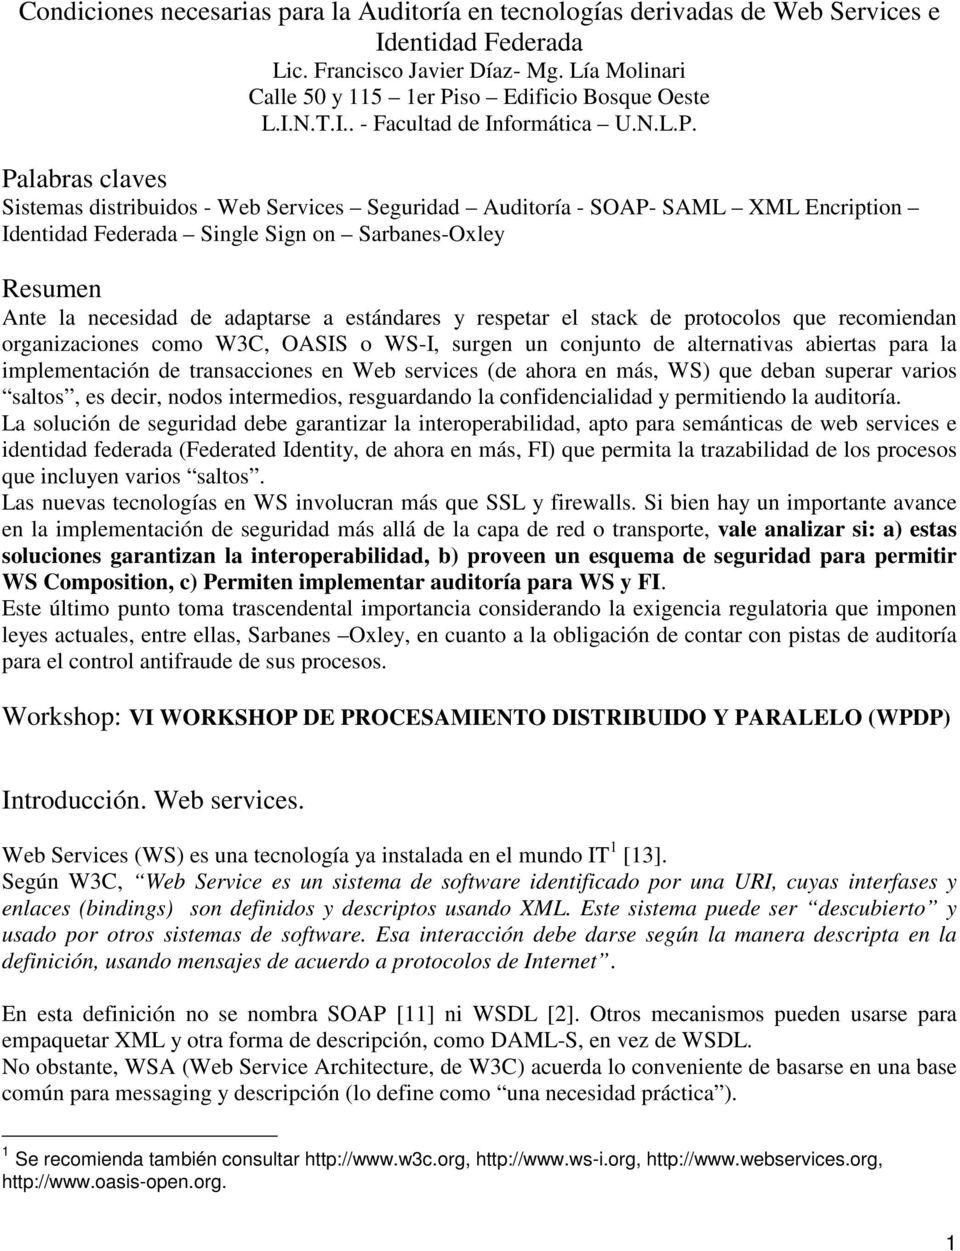 Palabras claves Sistemas distribuidos - Web Services Seguridad Auditoría - SOAP- SAML XML Encription Identidad Federada Single Sign on Sarbanes-Oxley Resumen Ante la necesidad de adaptarse a